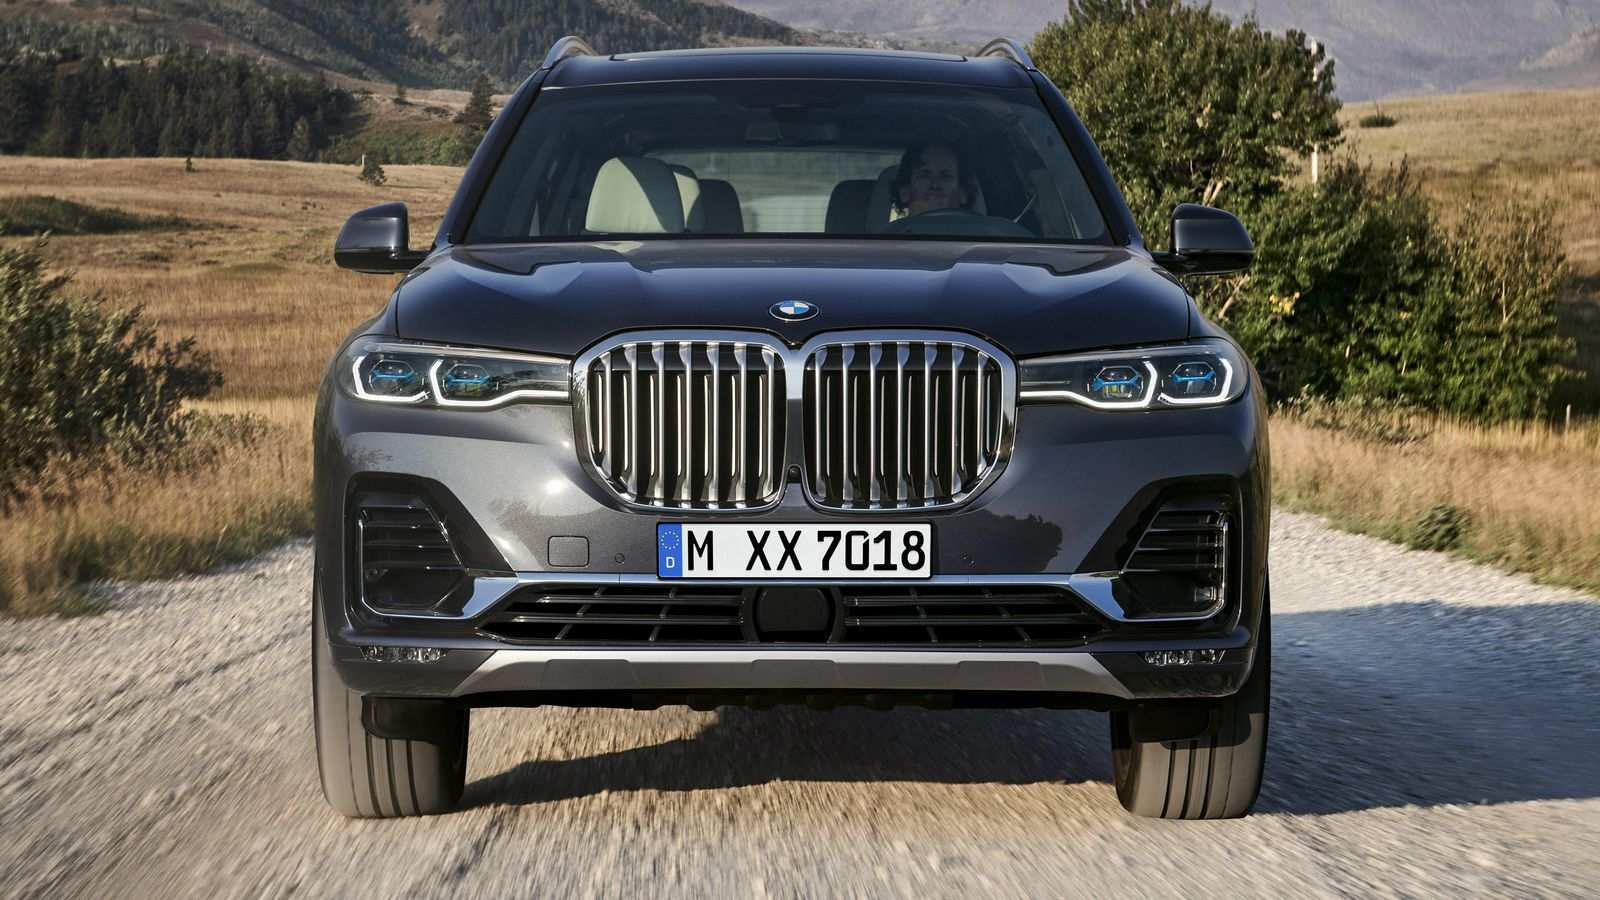 81 A 2019 Bmw Suv Spy Shoot